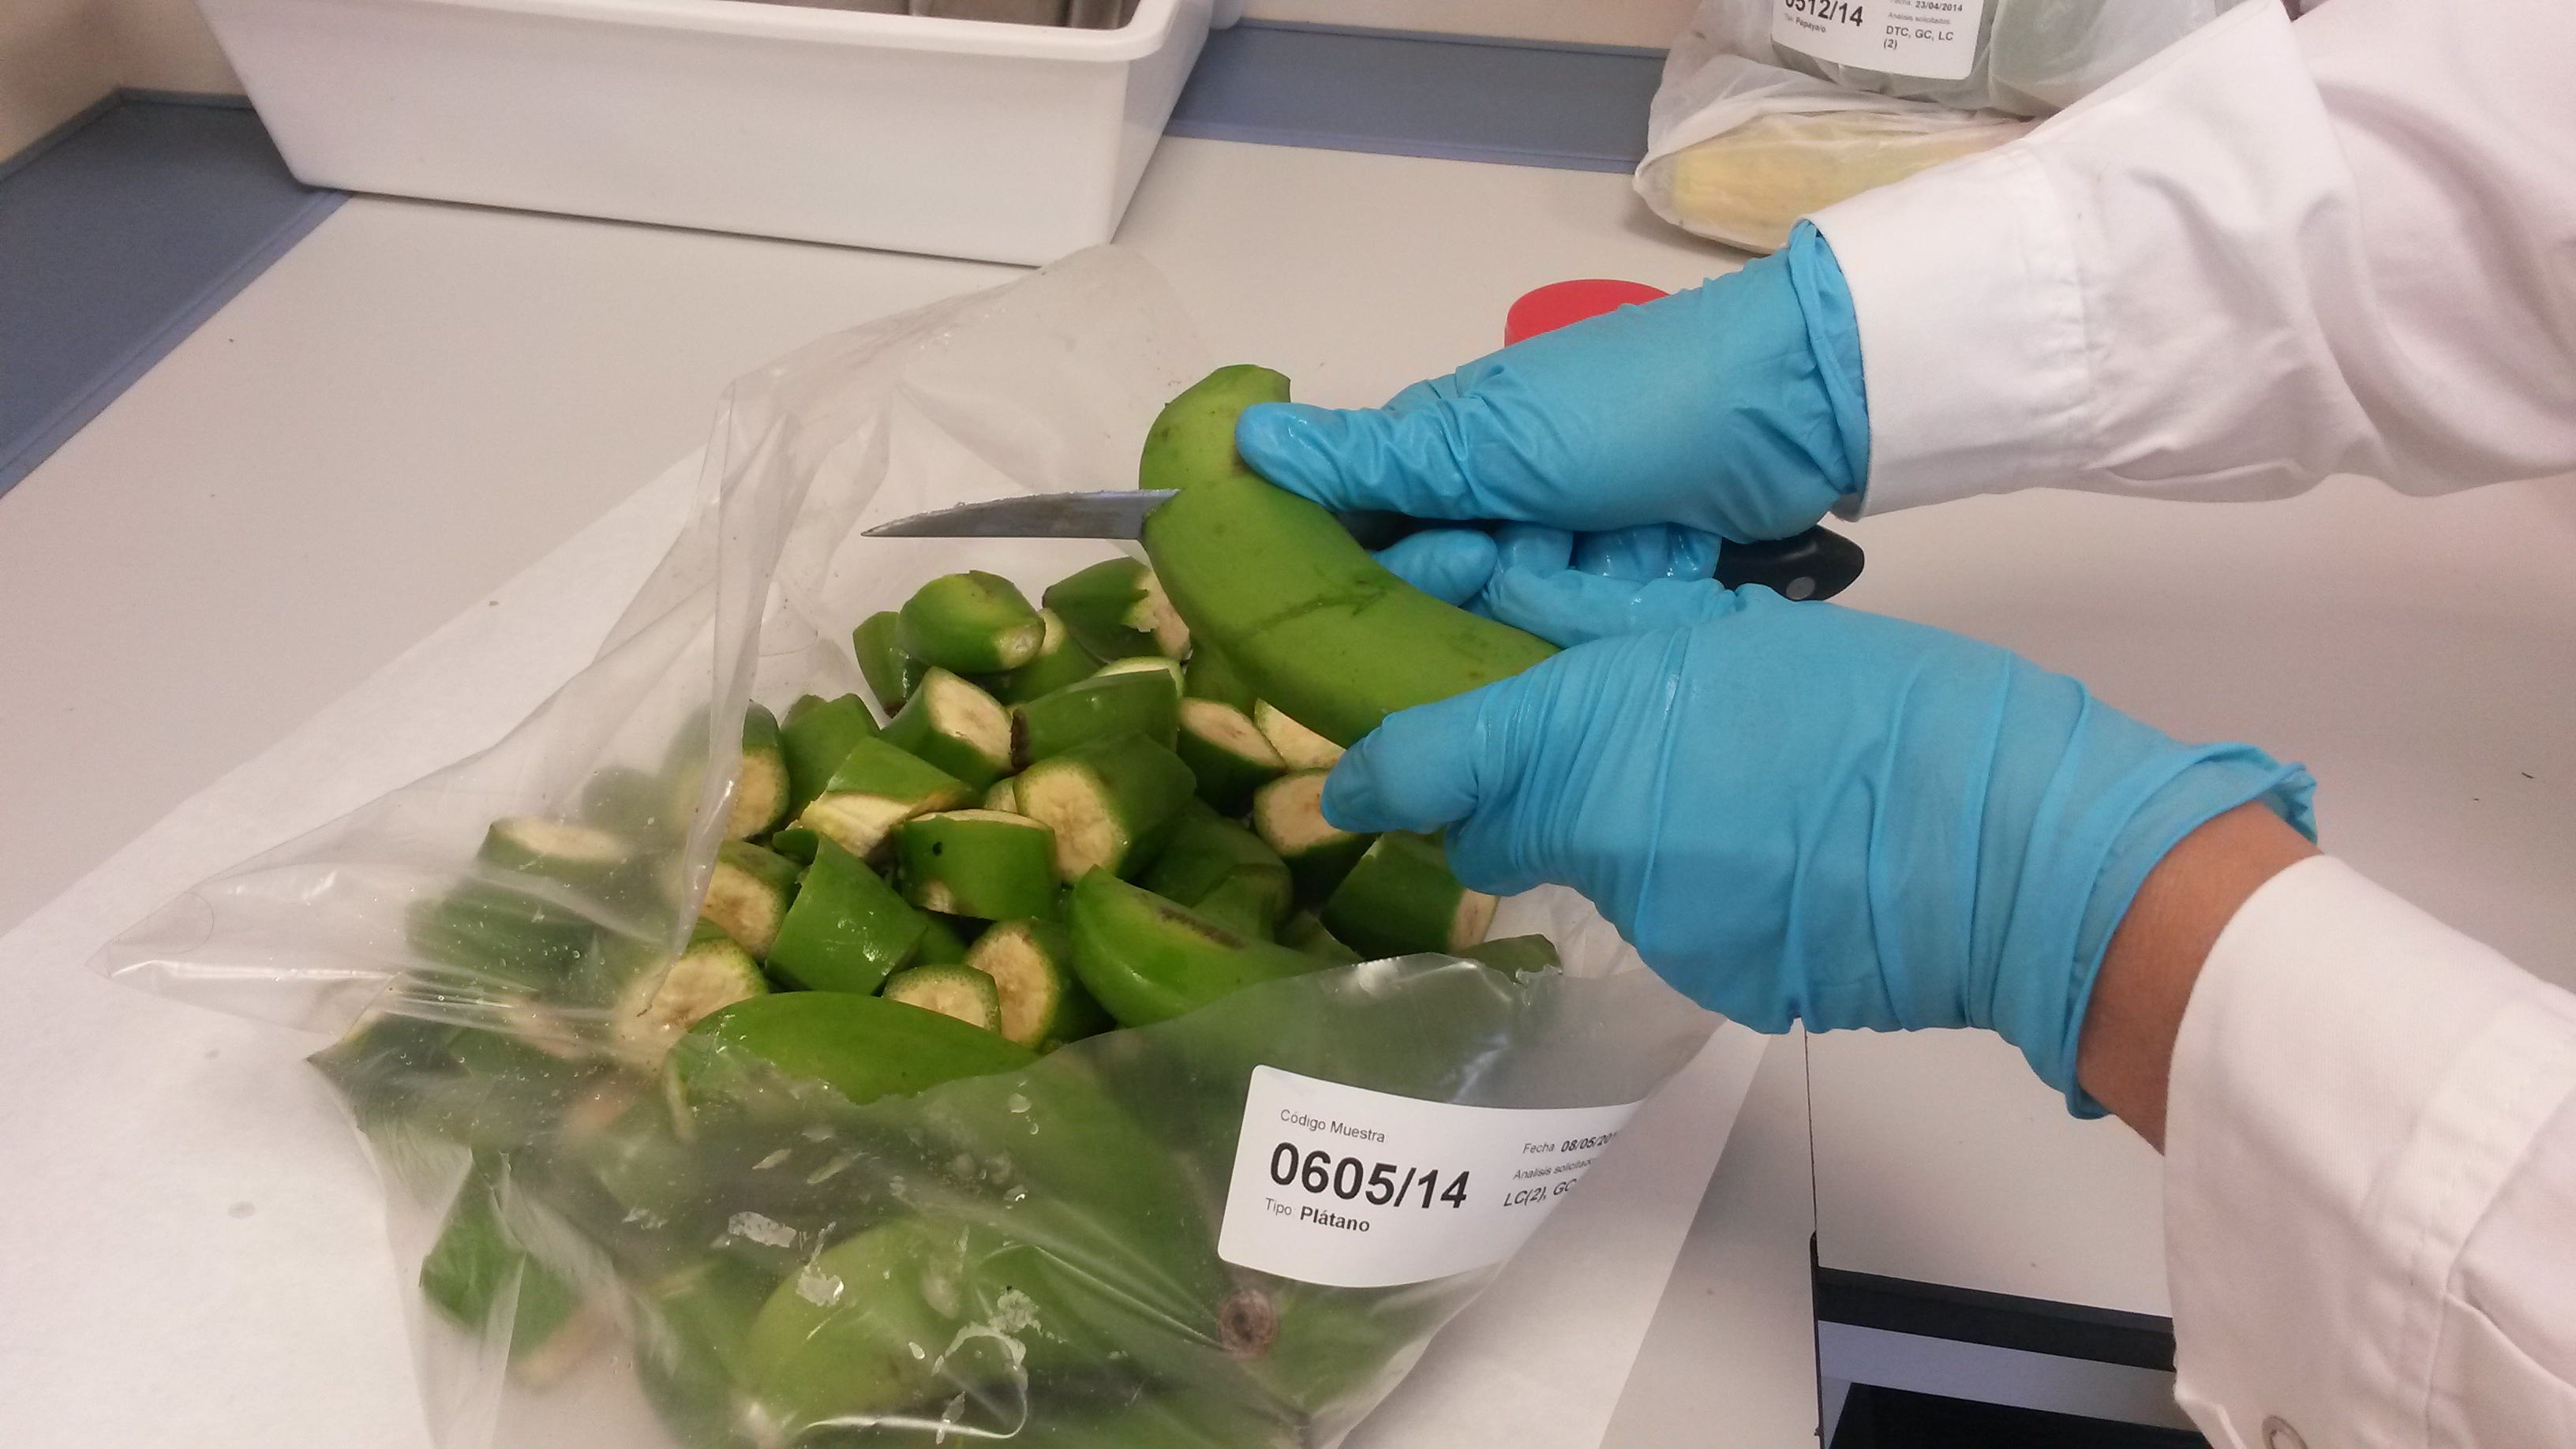 Fruit and vegetable pesticide